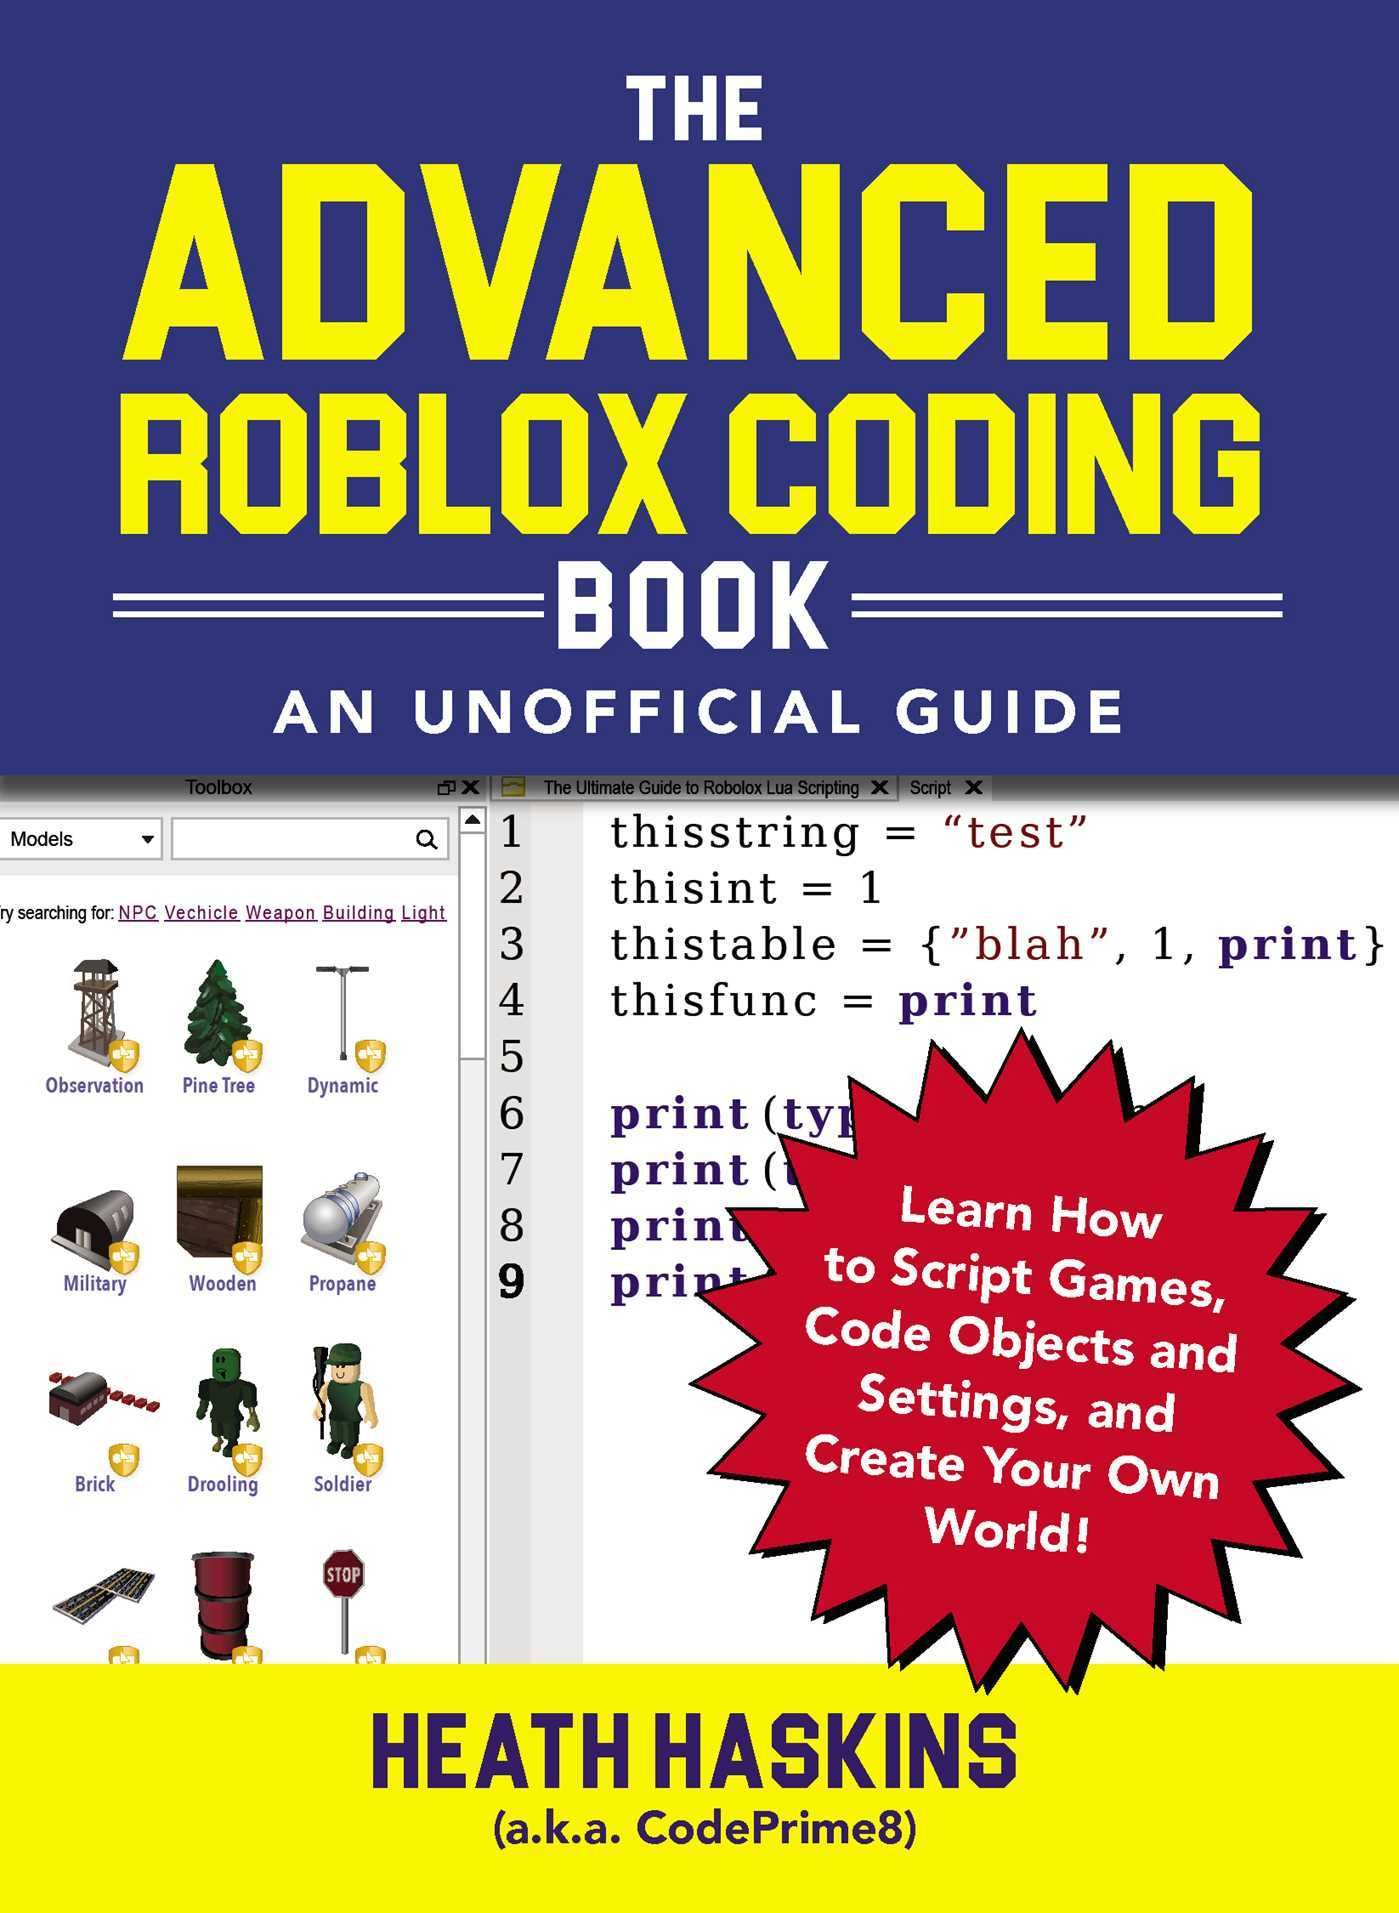 Download Pdf The Advanced Roblox Coding Book An Unofficial Guide Learn How To Script Games Code Objects And Sett Roblox Books Roblox Create Your Own World